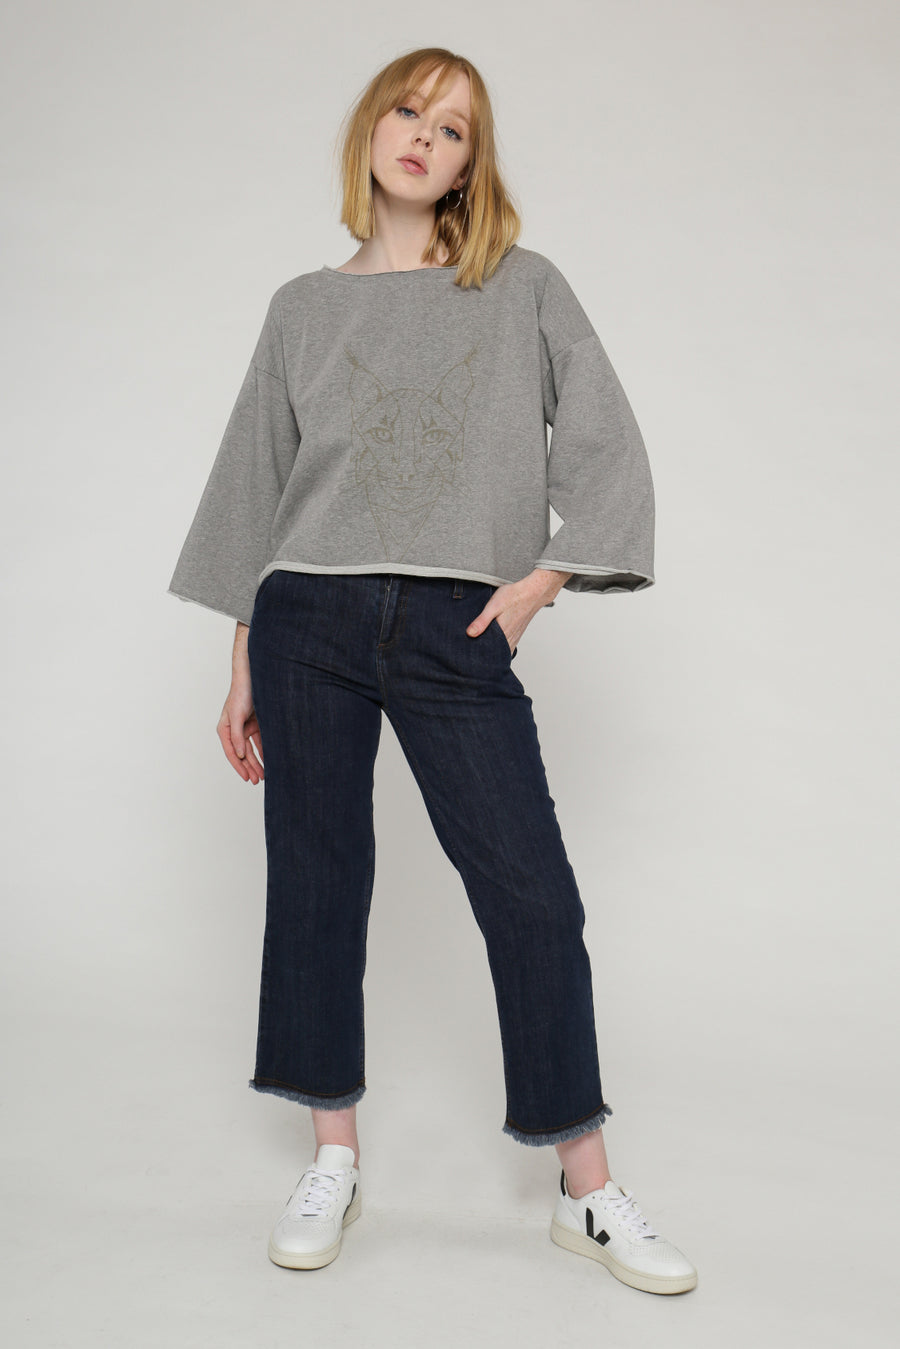 Moraine 7/8 jeans